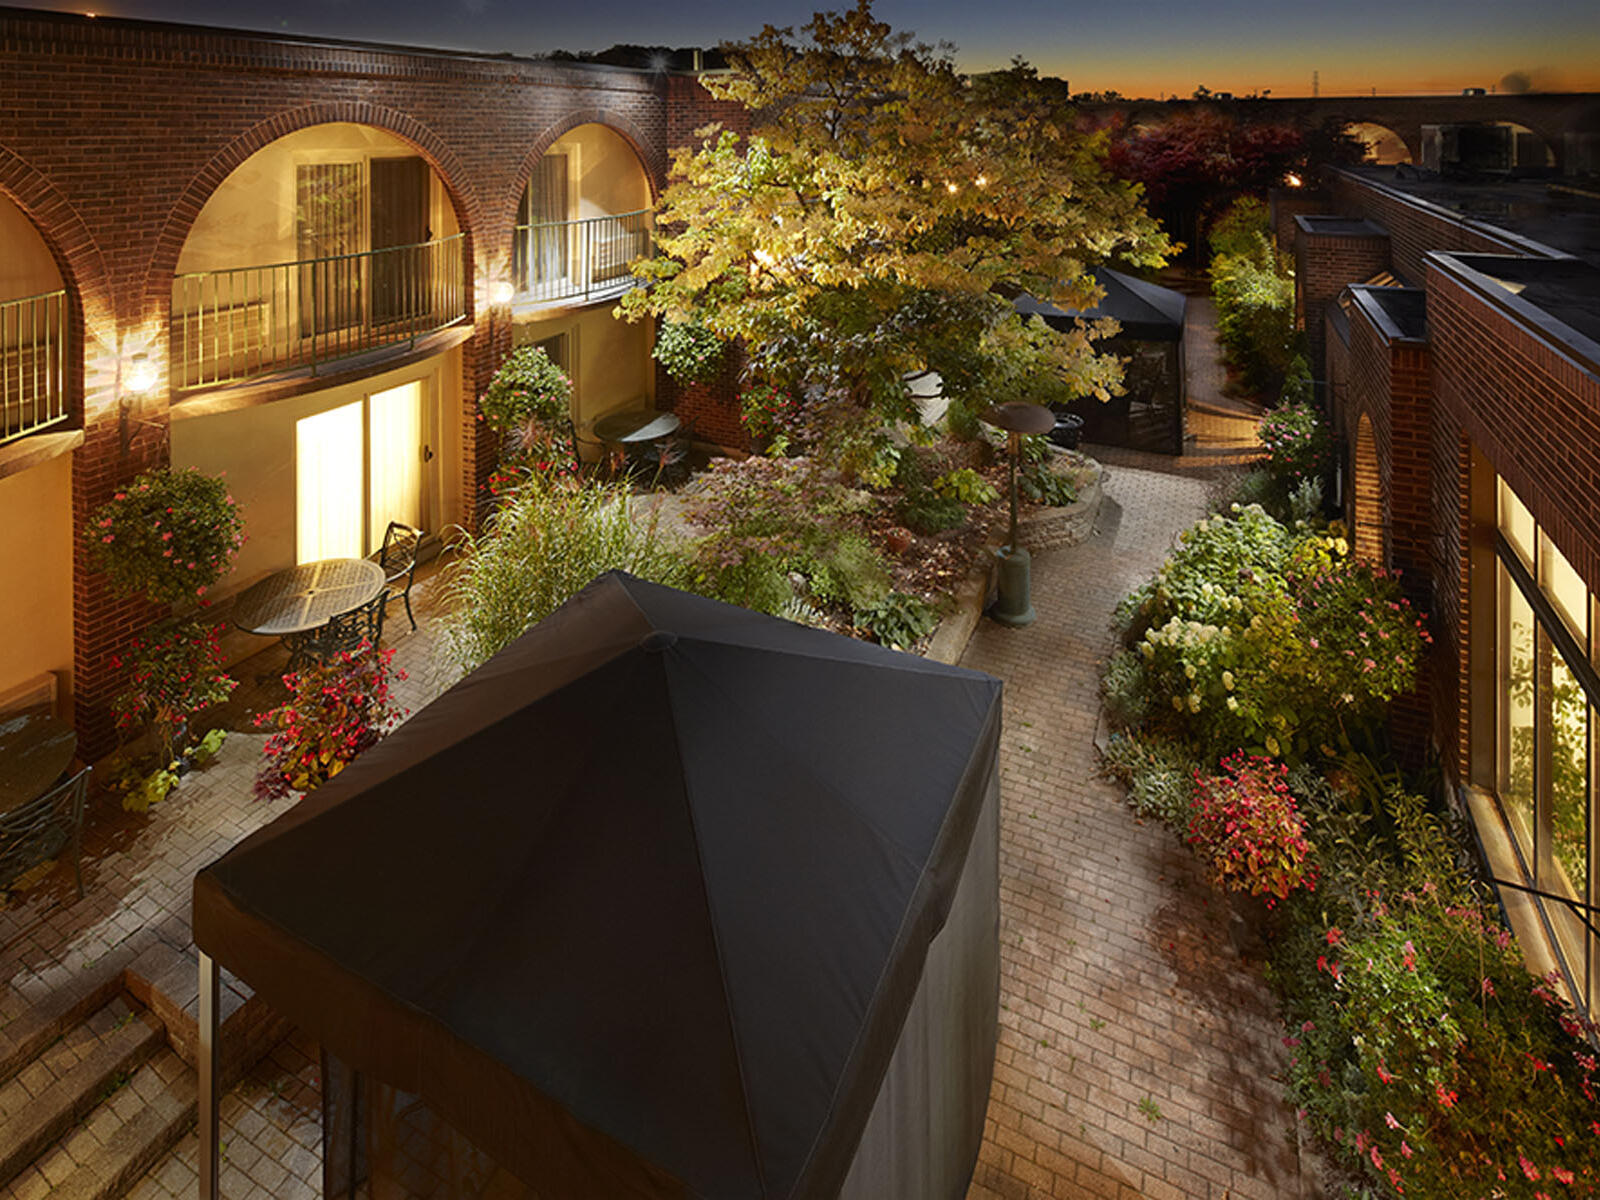 top view of courtyard at sunset at The Inn of Waterloo